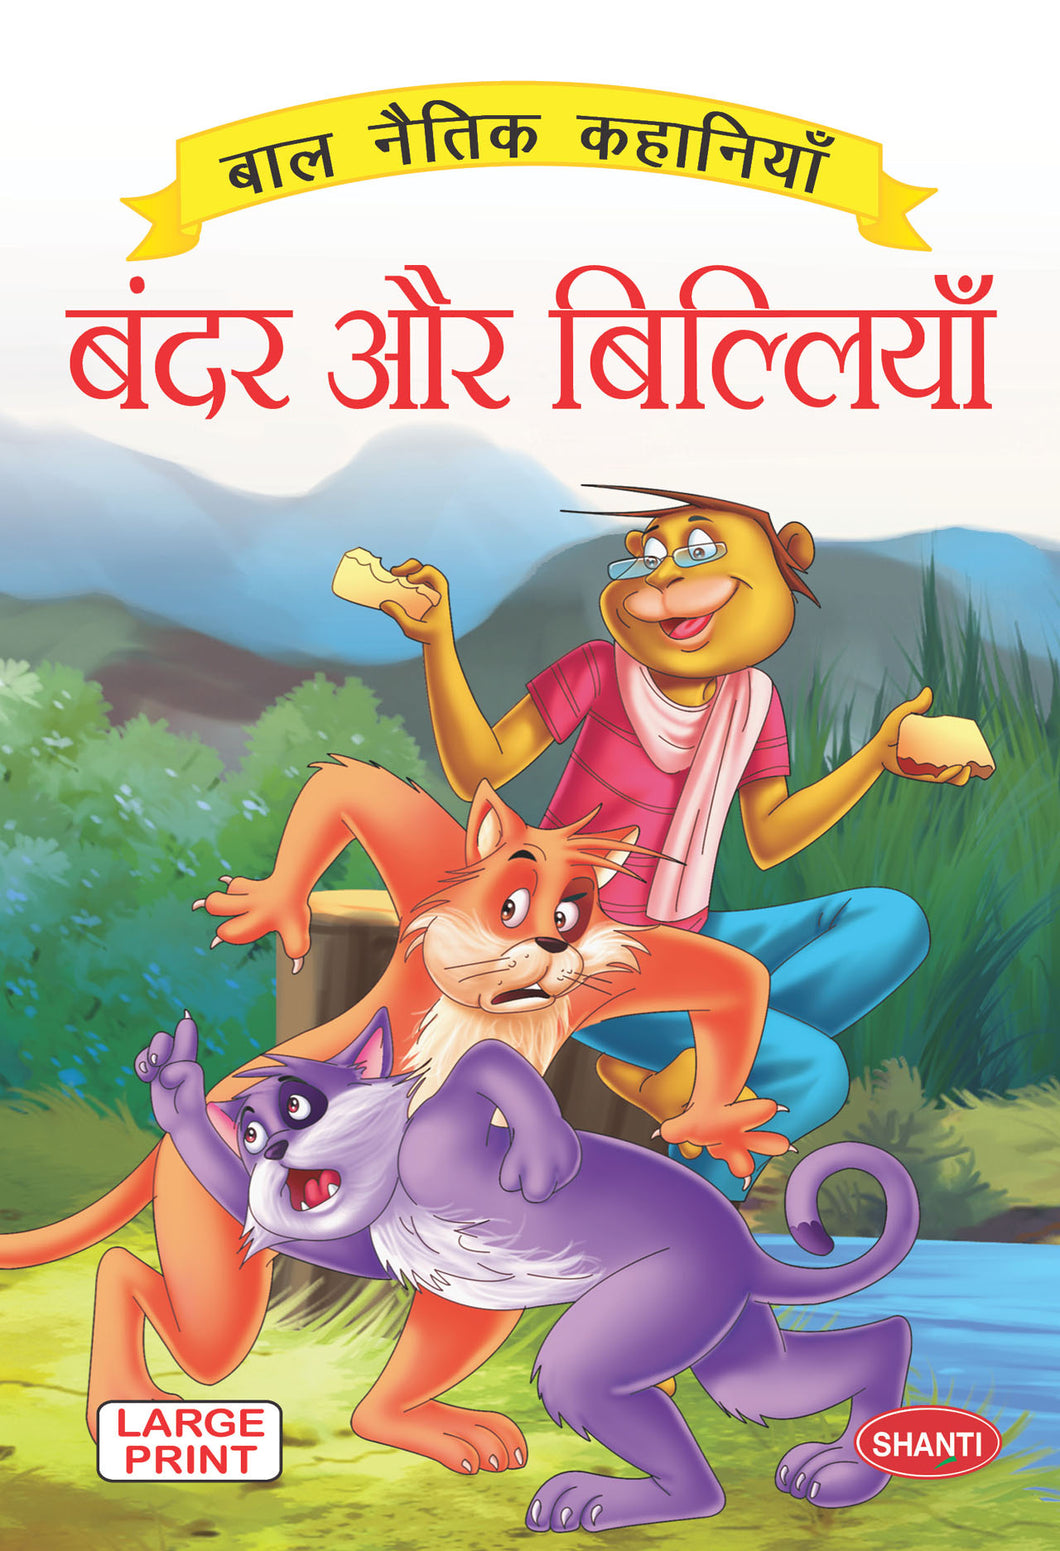 Moral stories for children-Moral Stories (Hindi) - Bandar aur Billiyan